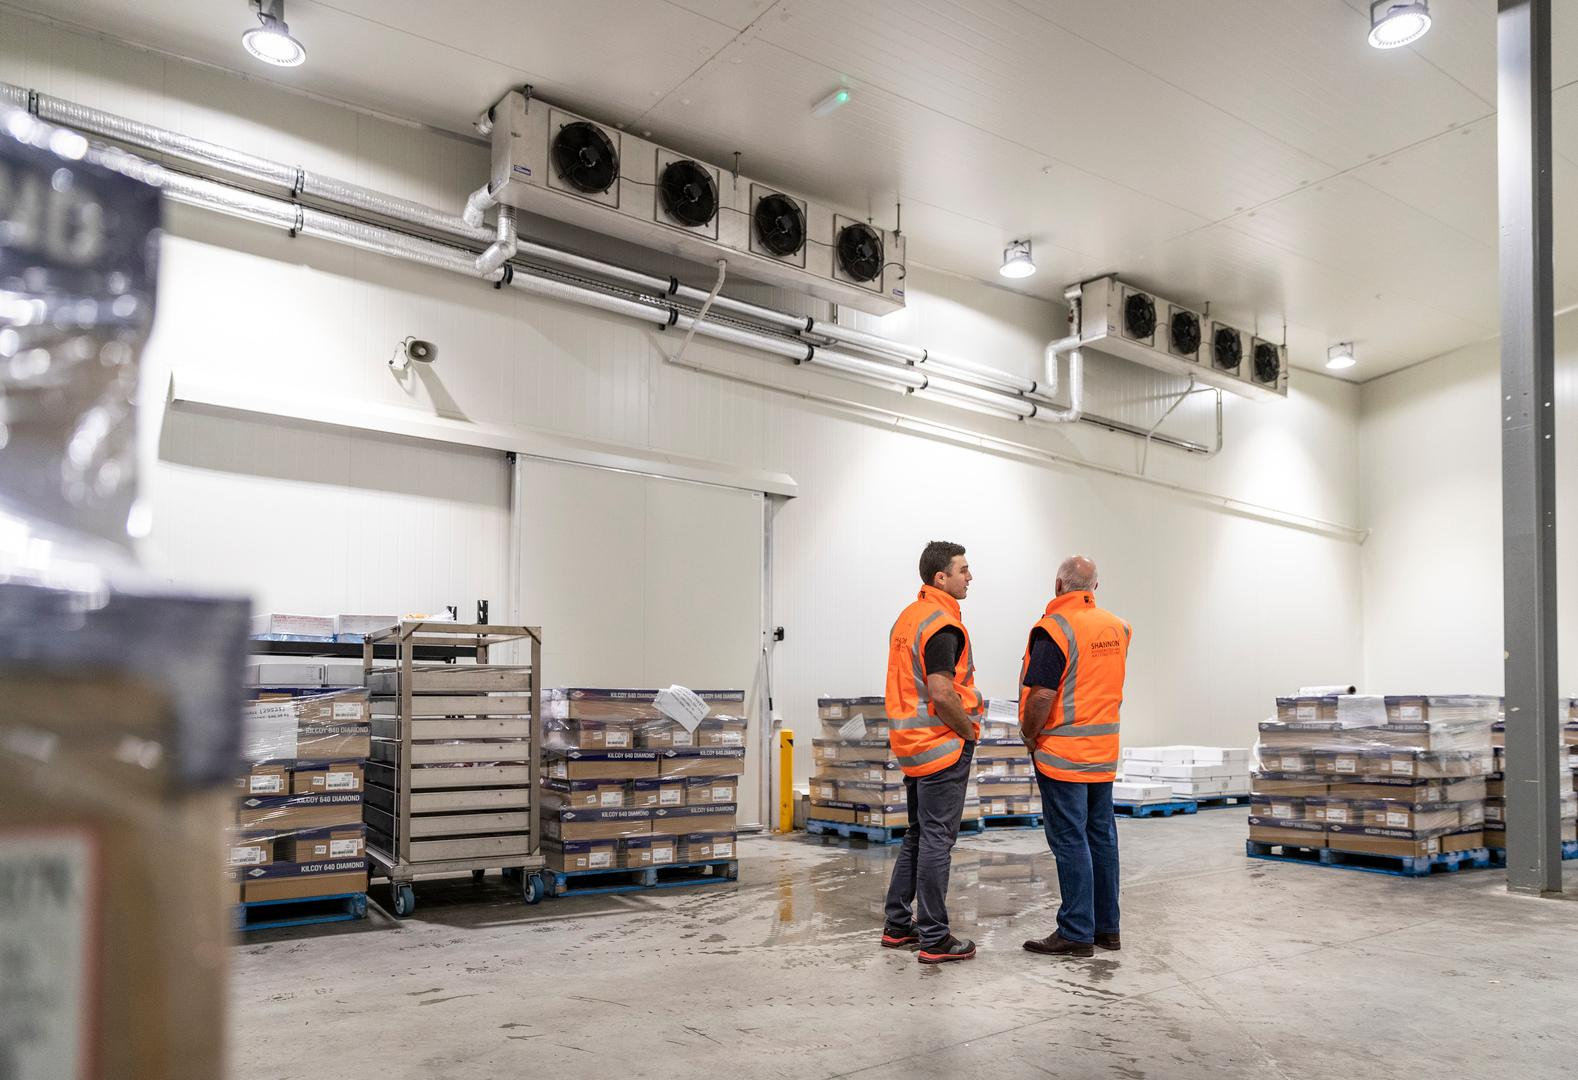 Our in-house team of engineers can provide design services for any refrigeration, ventilation or air-conditioning project.